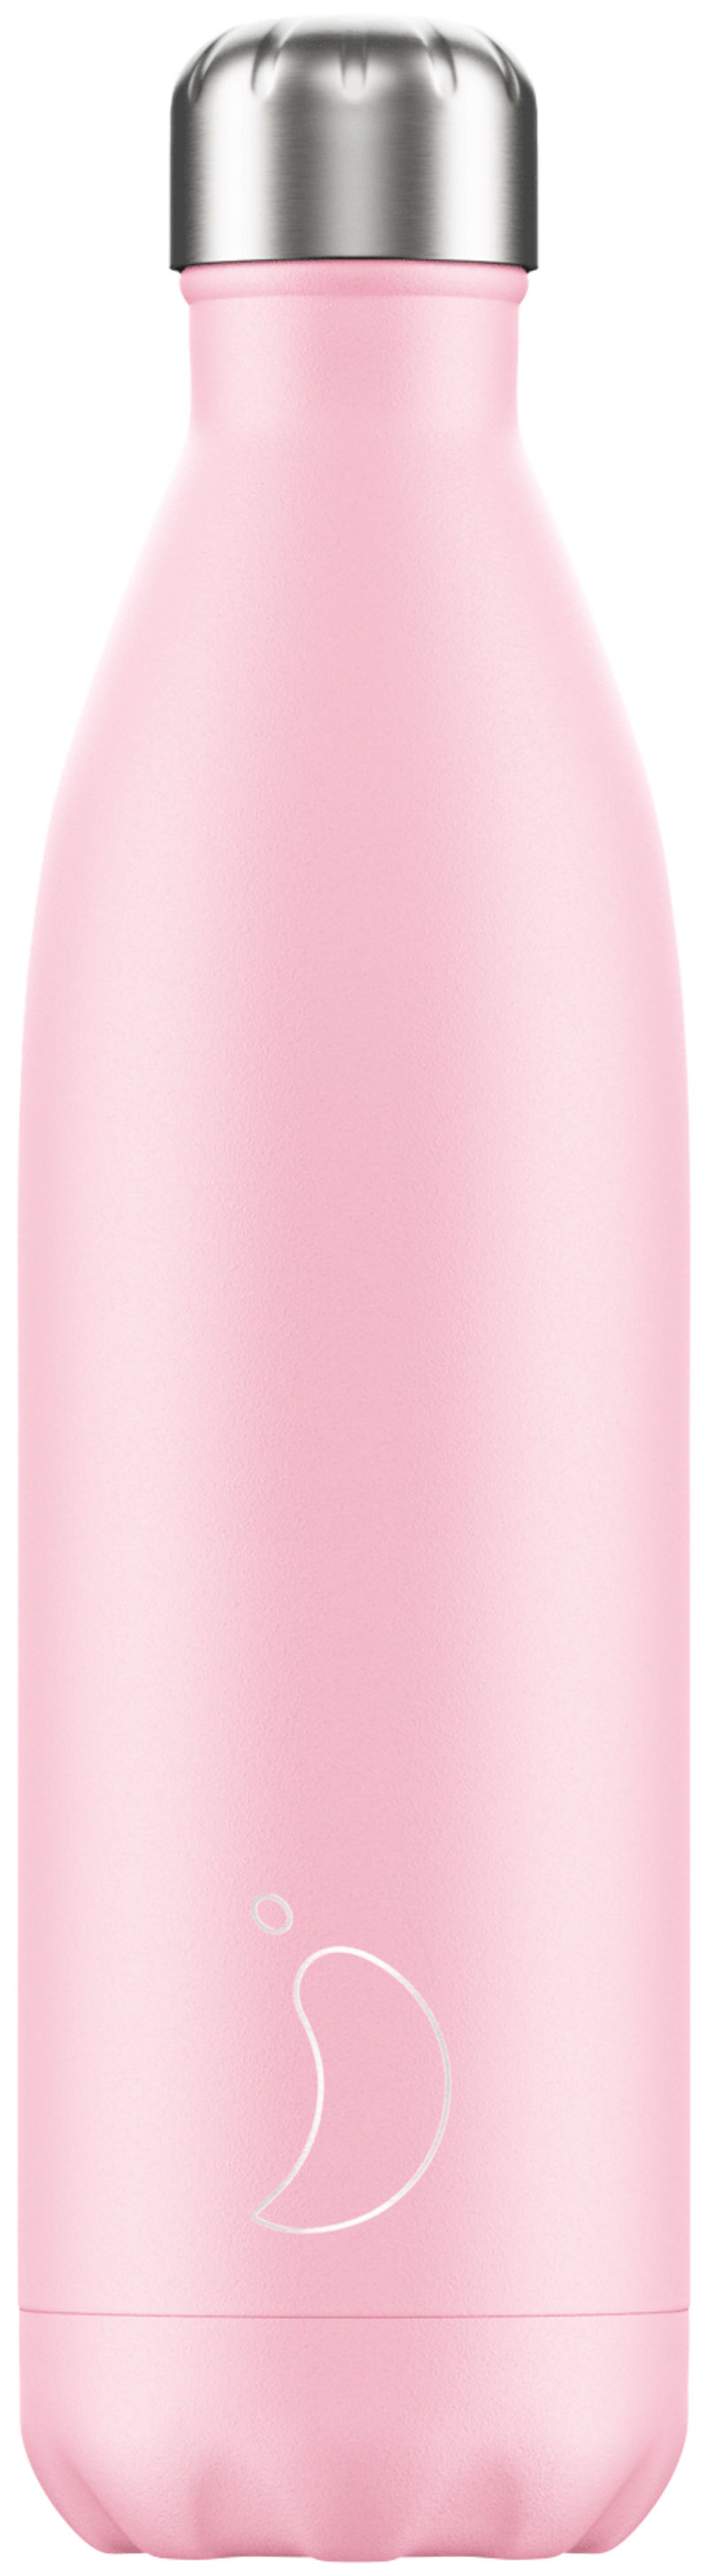 Botella Inox Rosa Pastel 750ml -